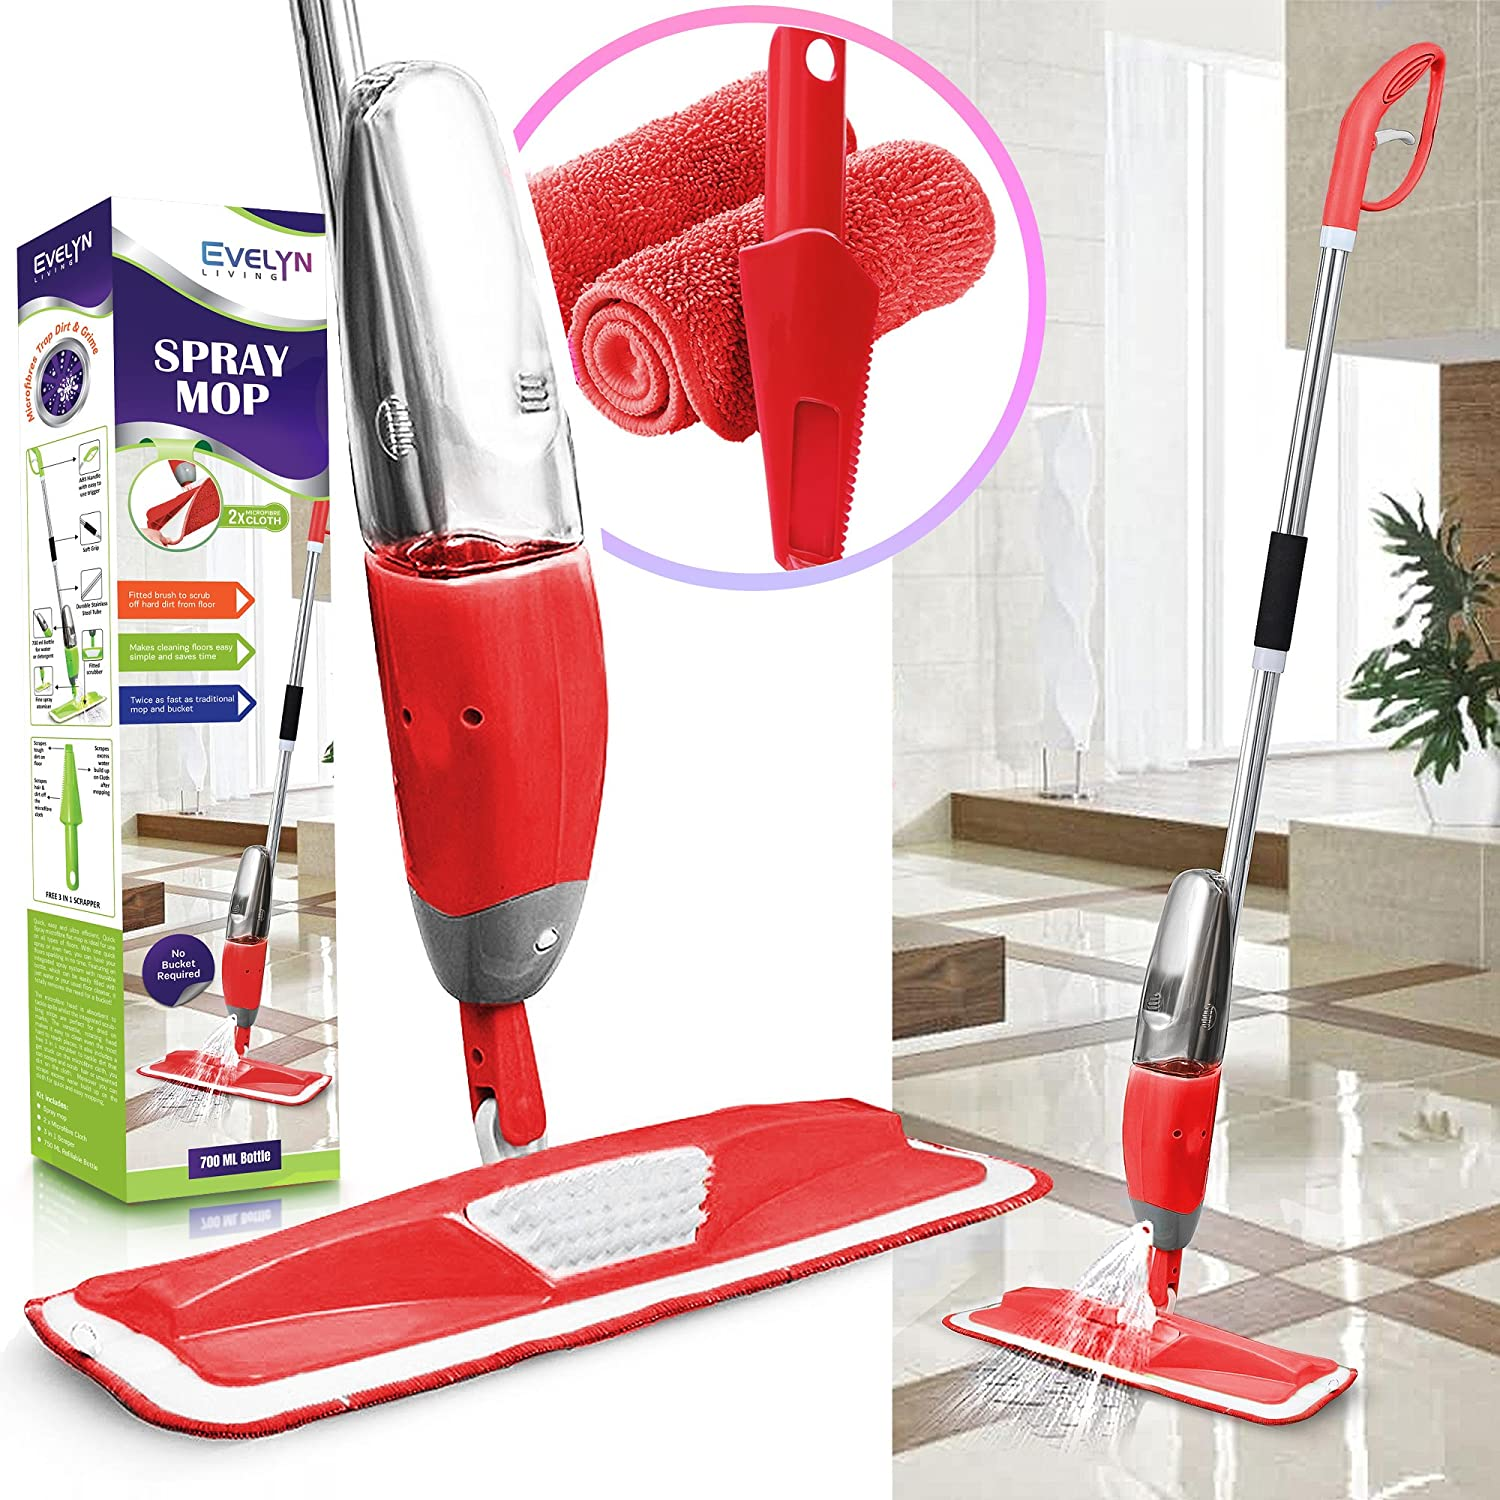 Evelyn Living Blue Spray Mop with Refillable 700 ml Capacity Bottle with Free 2 Replaceable Microfibre Pad & 3 in Scrapper Ideal for Hardwood, Laminate, Wood, Wet and Dry Vinyl & Tiles Floor Cleaning